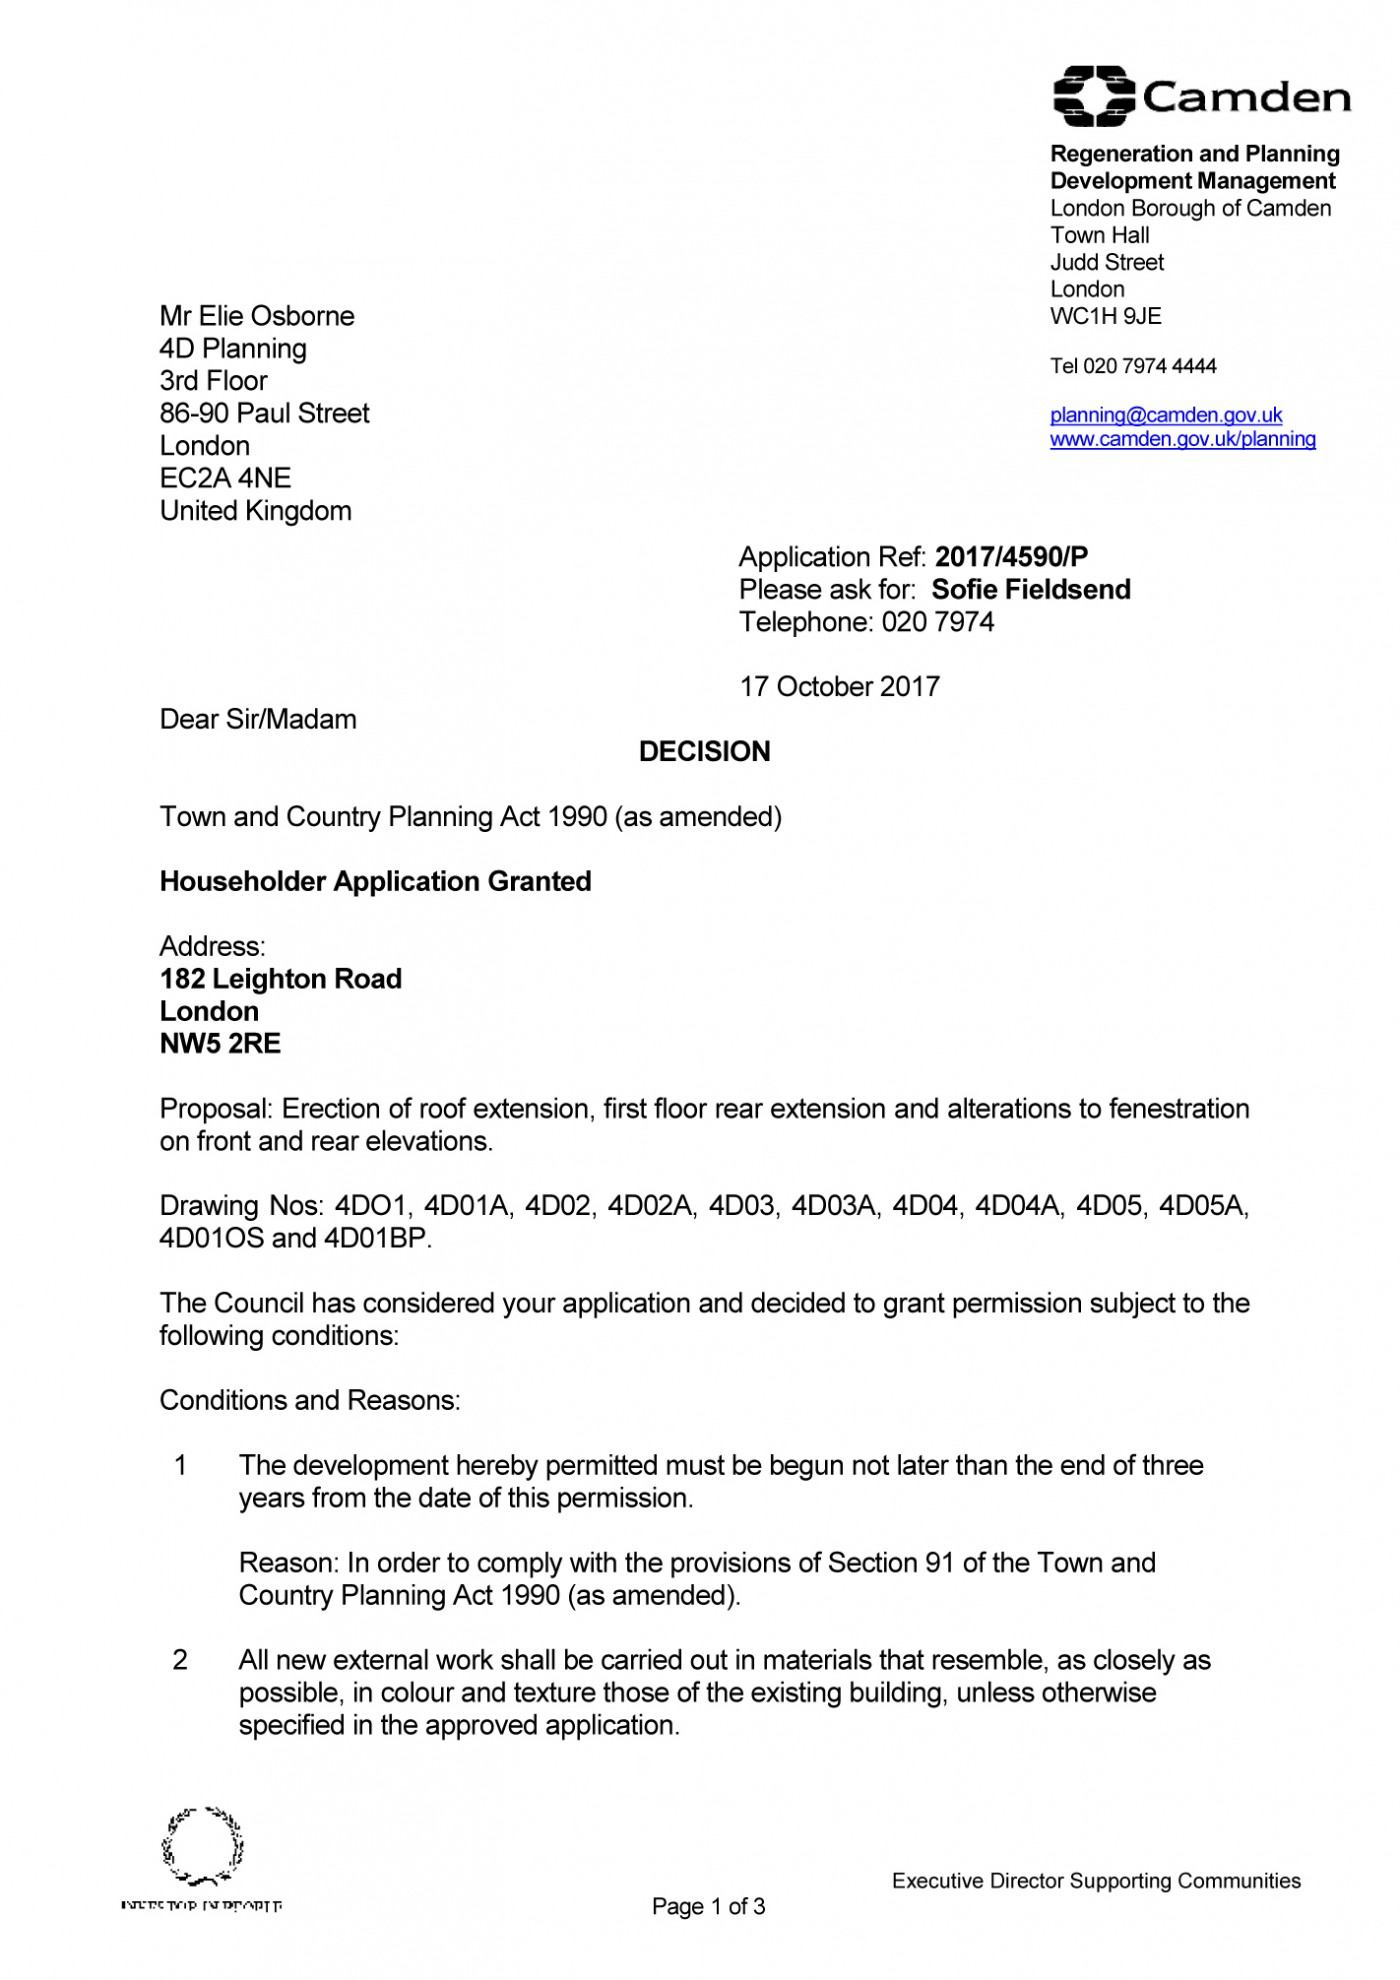 Camden Council Decision Notice - Granted Planning Permission